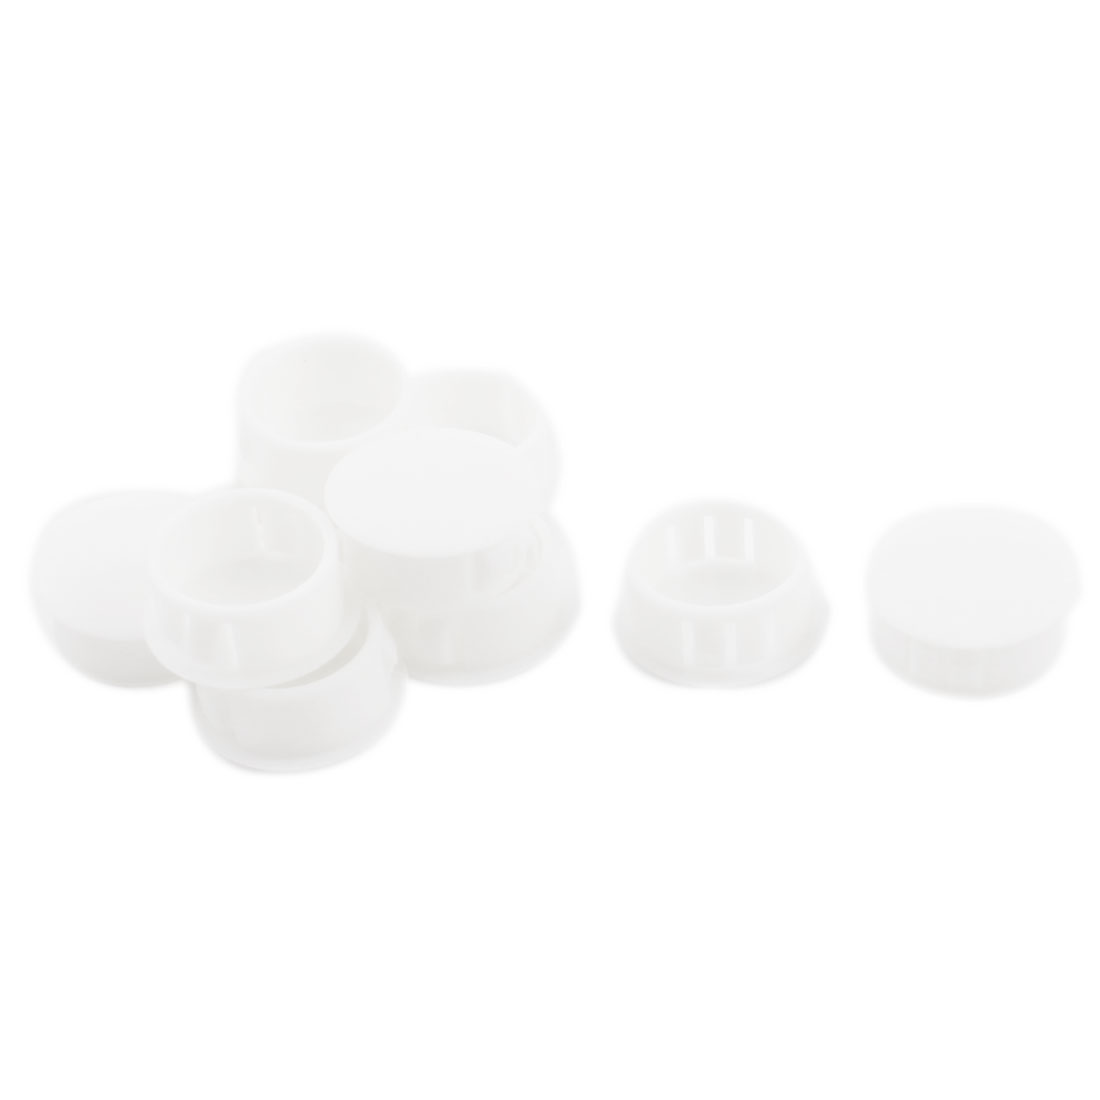 10Pcs SKT-22 Insulated White Plastic Snap in Mount Blank Locking Hole Plug Cover Harness Fastener 22.1mm